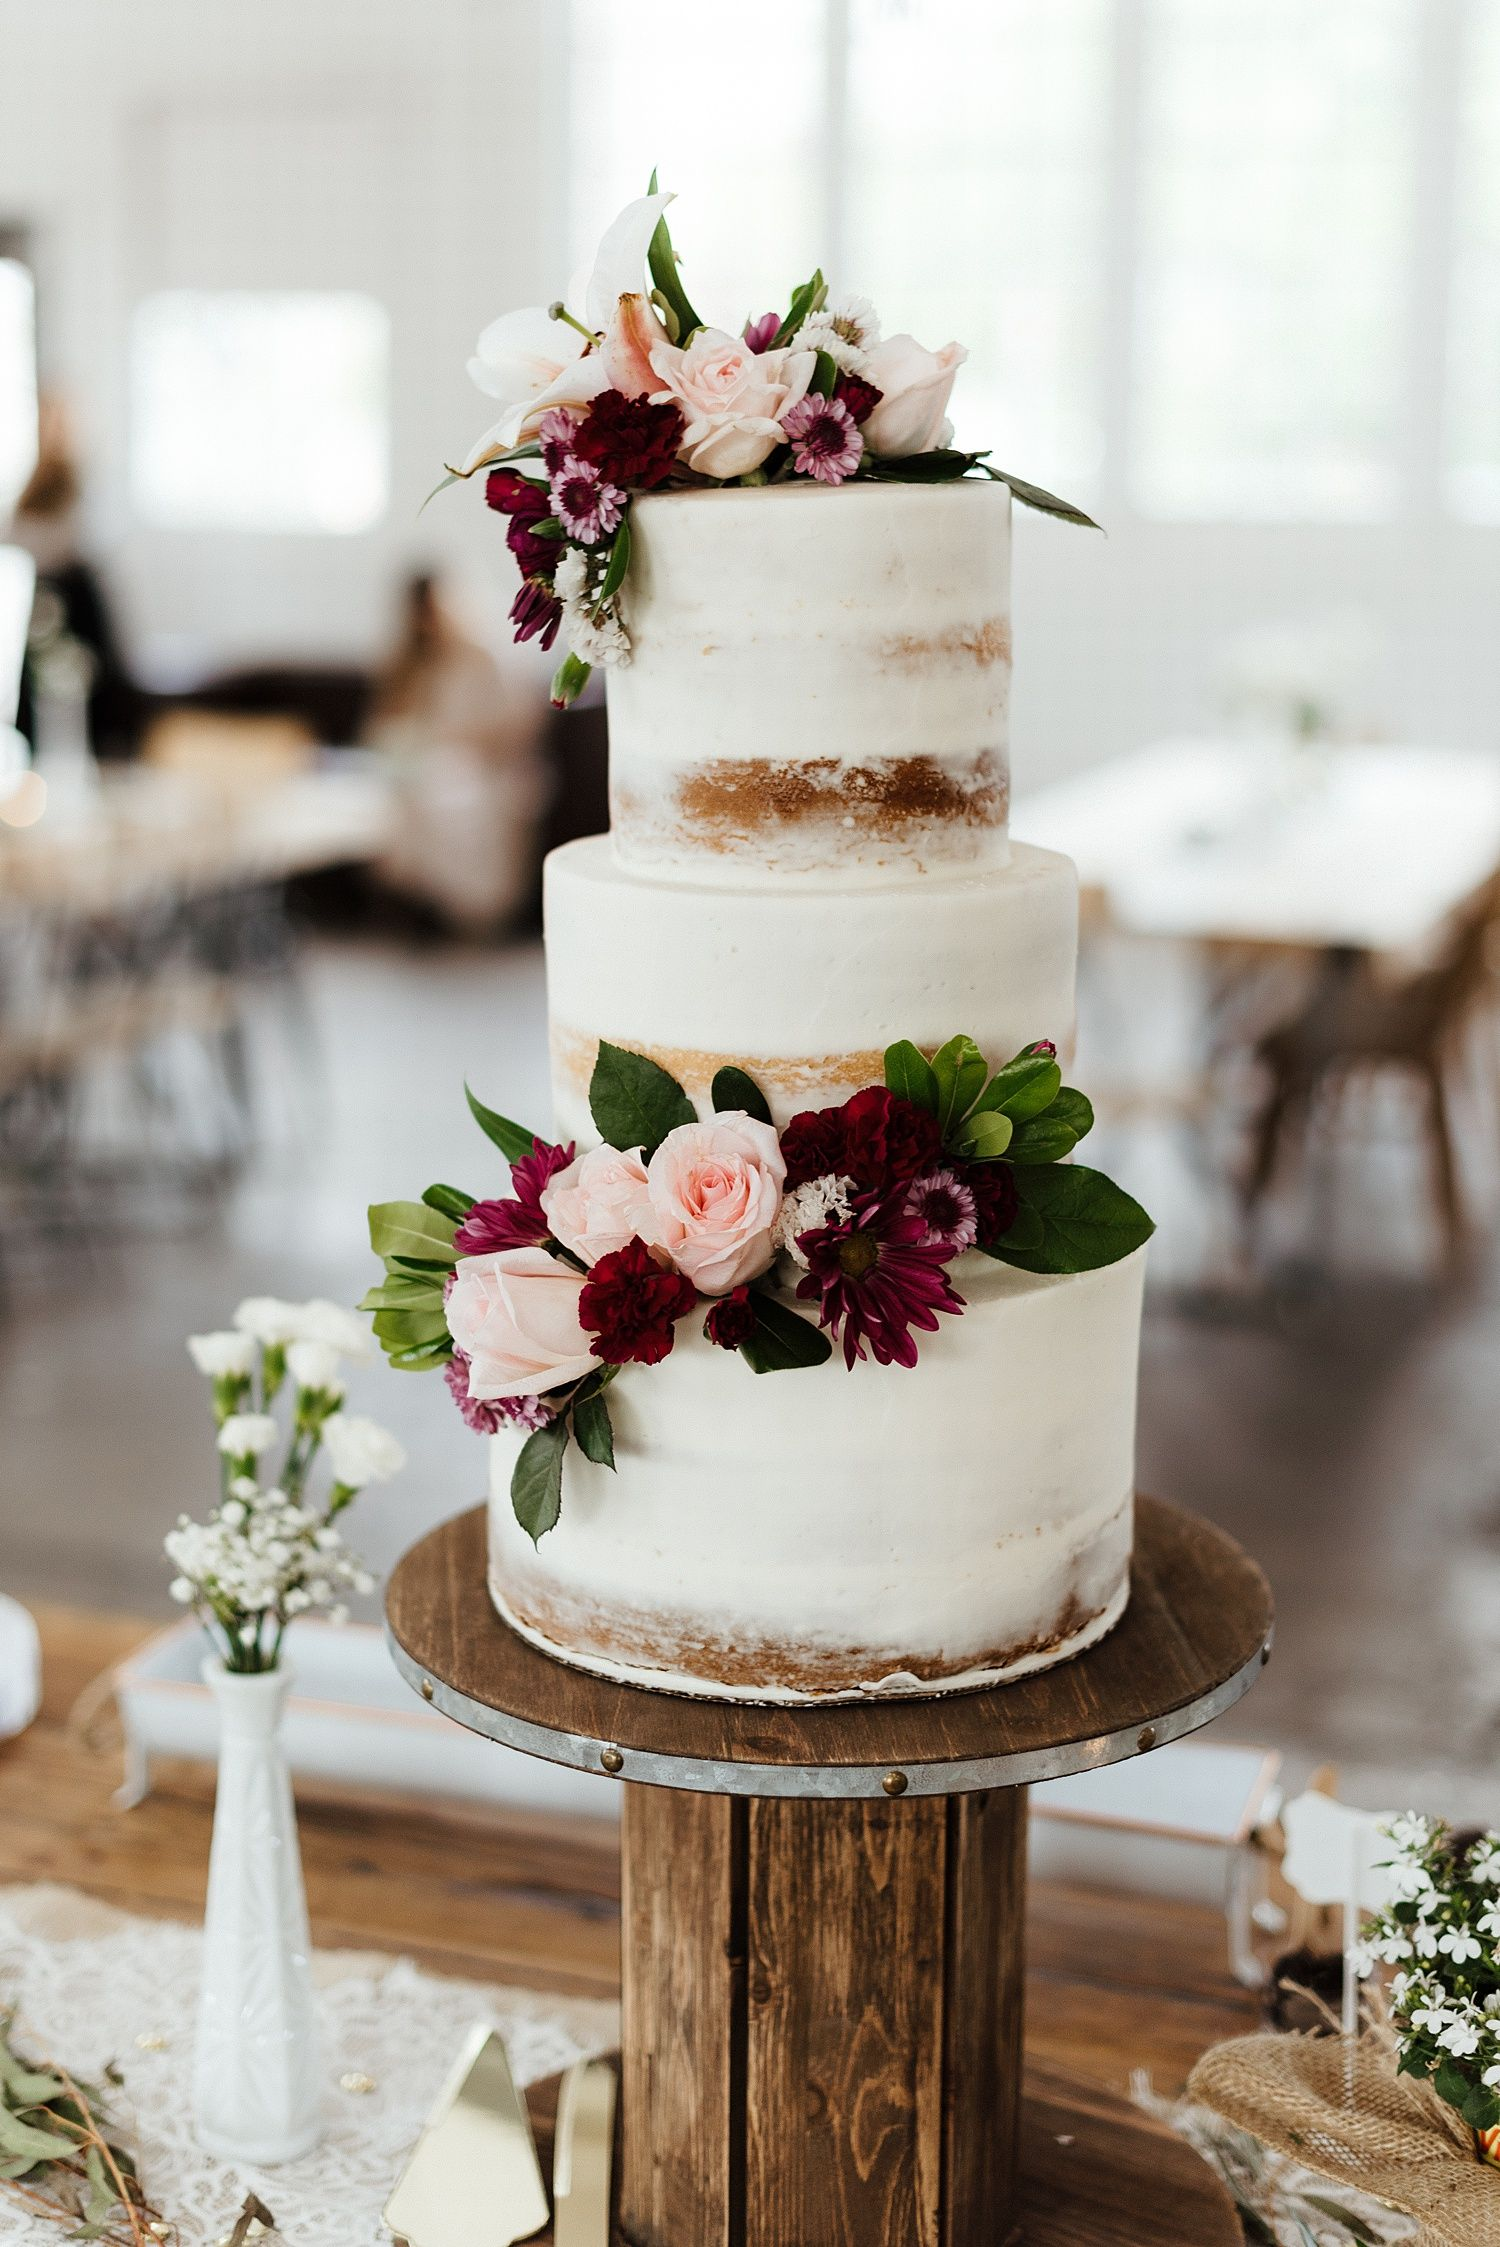 Wedding Gallery in 2020 Wedding cake rustic, Country